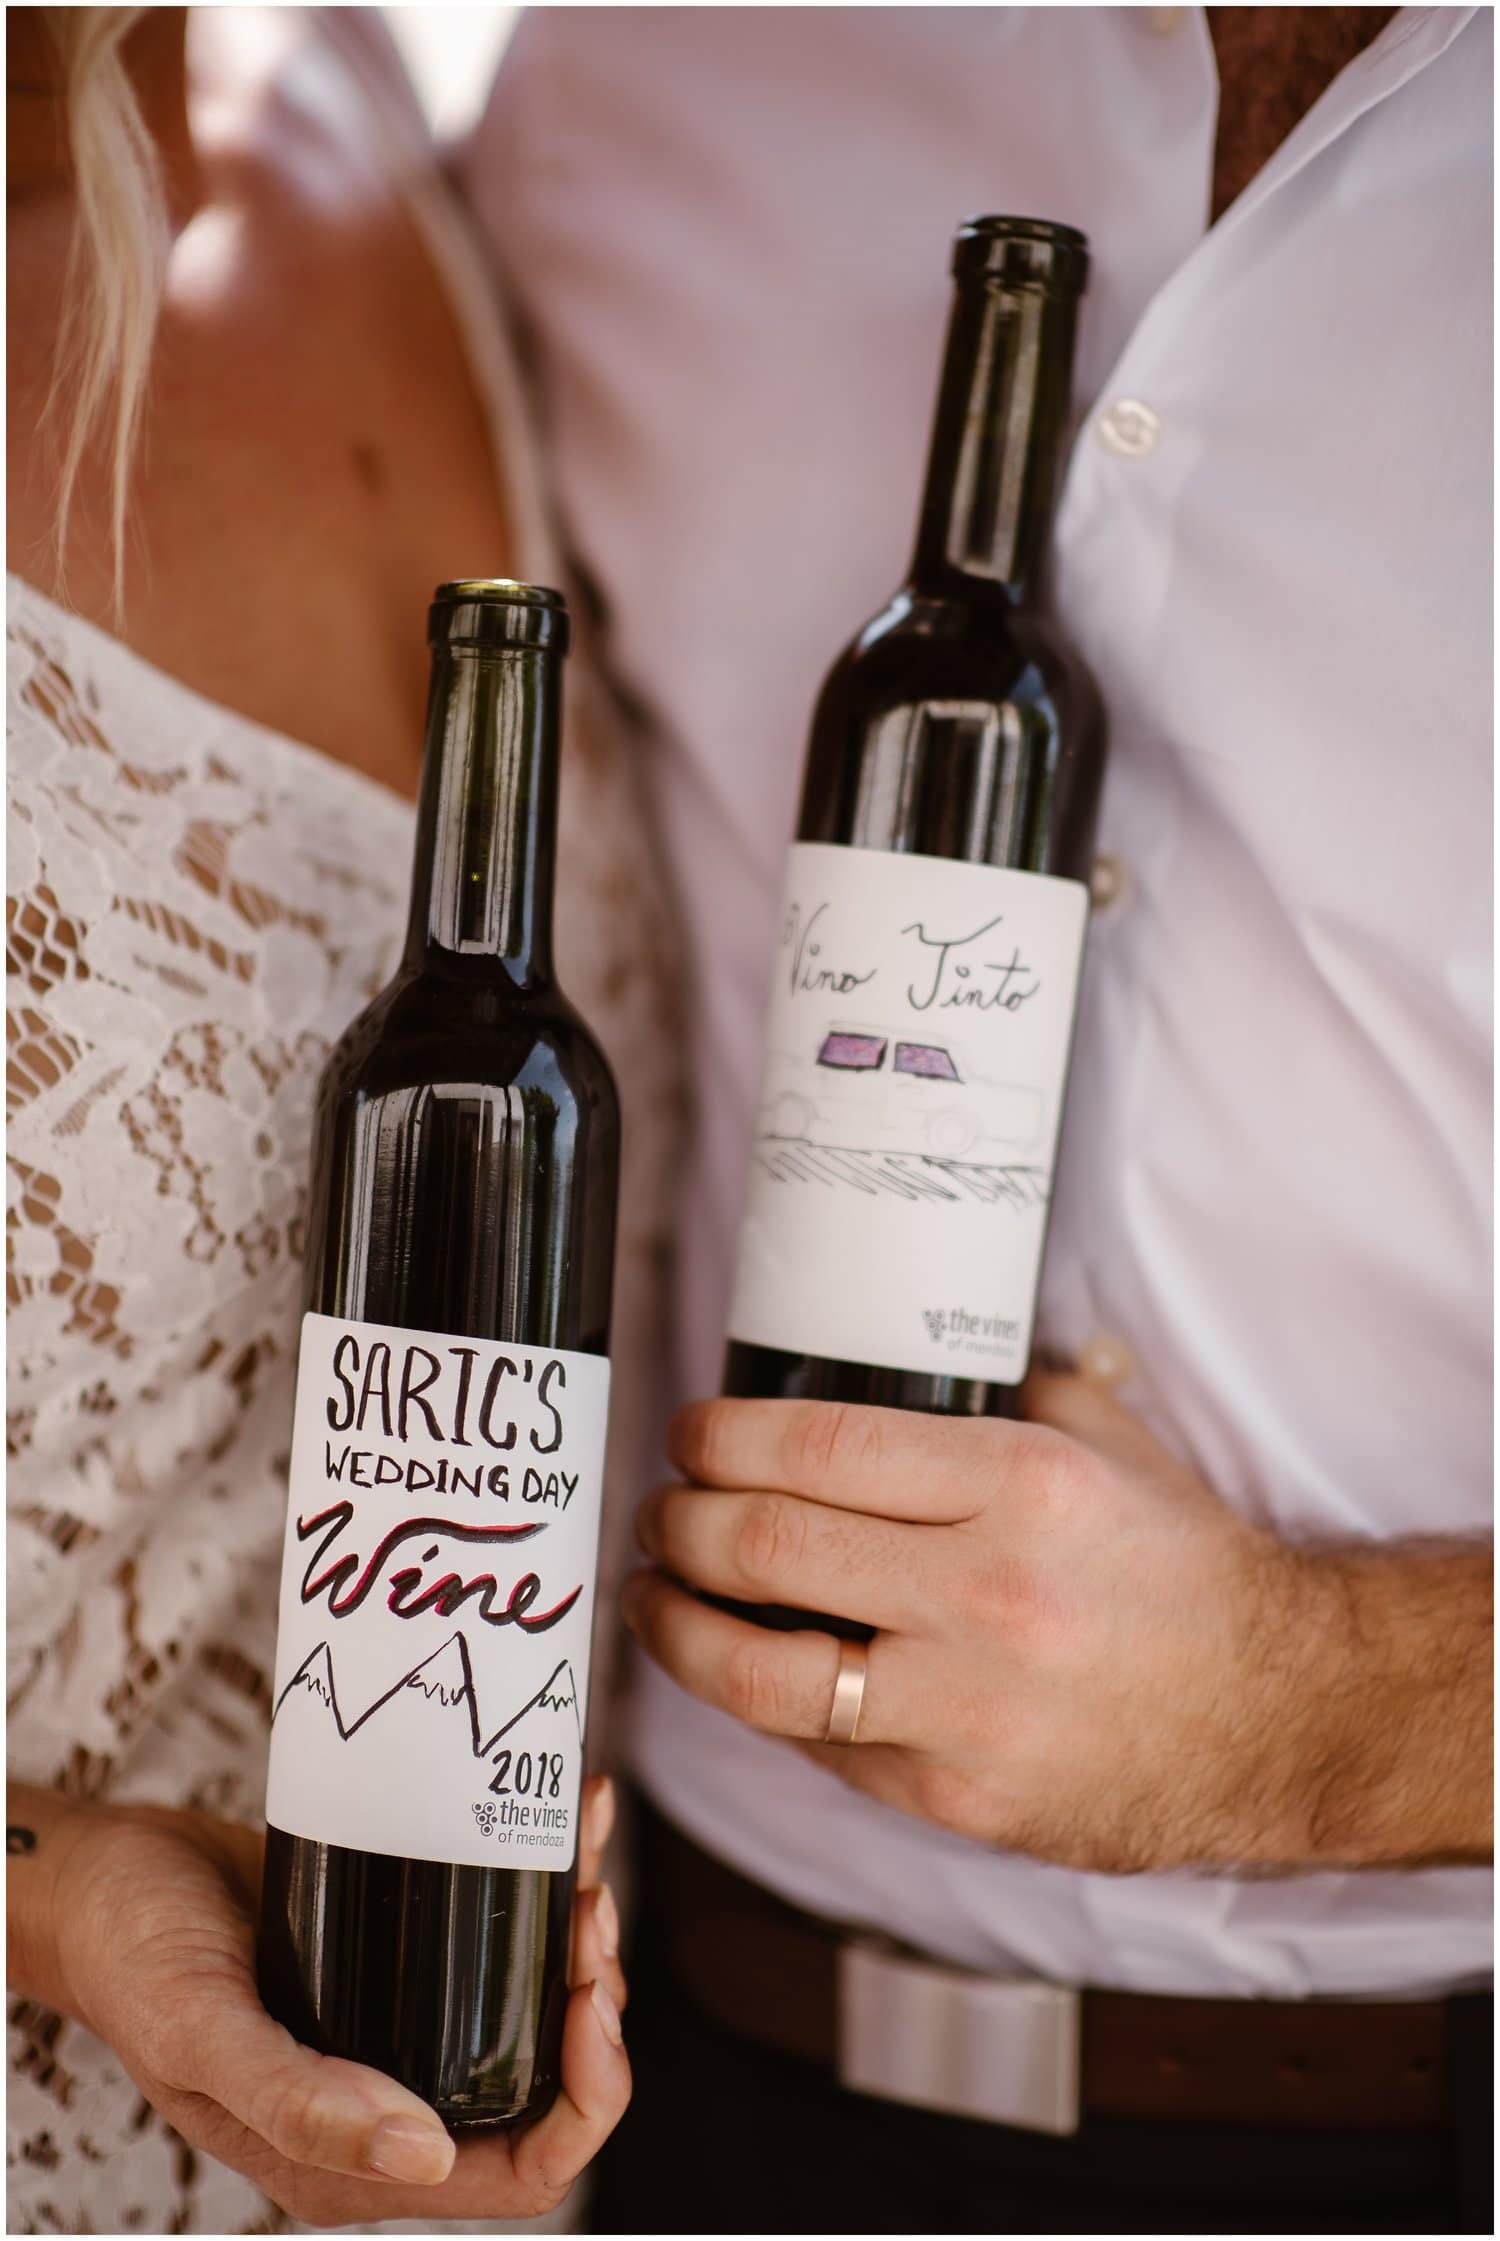 A couple hold bottles of wine on their wedding day.